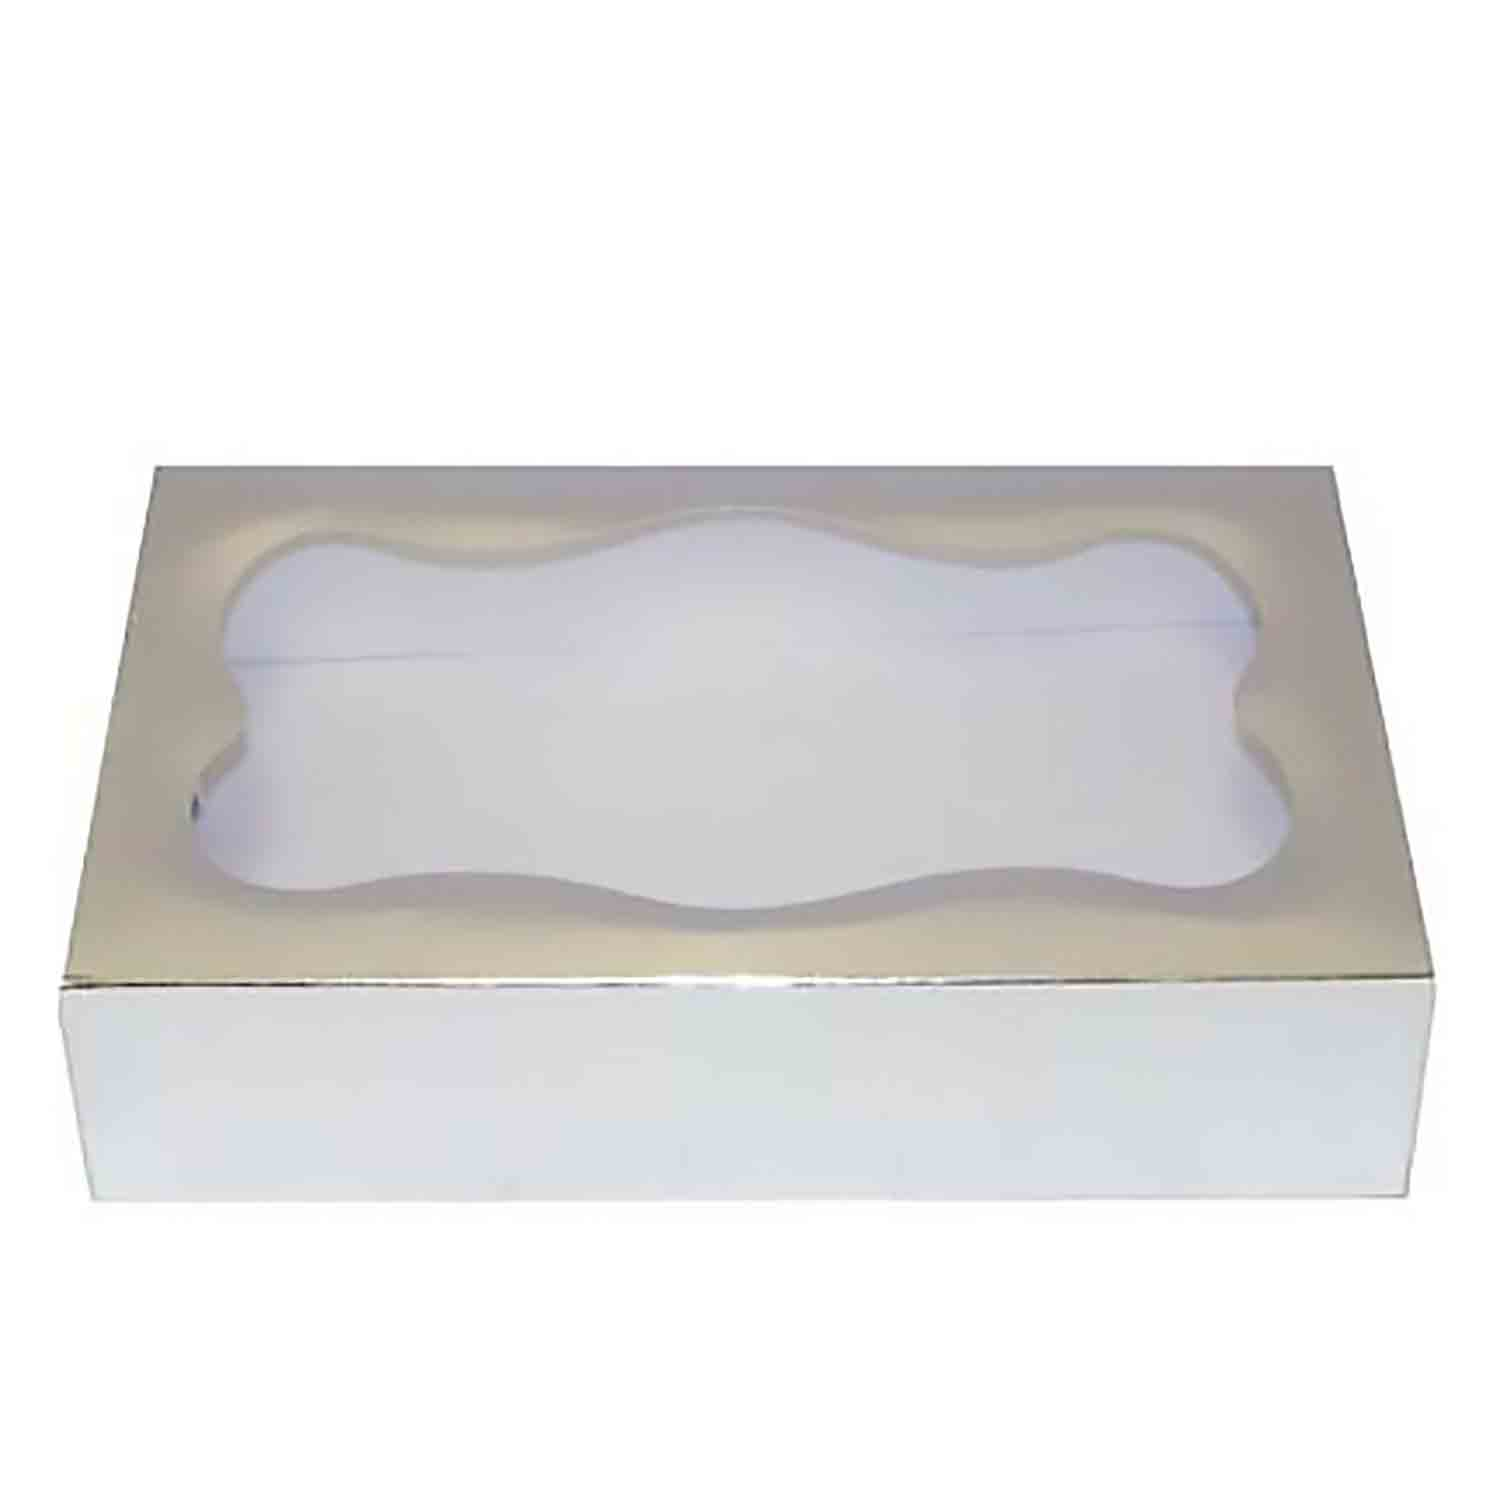 2 lb Silver Foil Cookie Box with Window